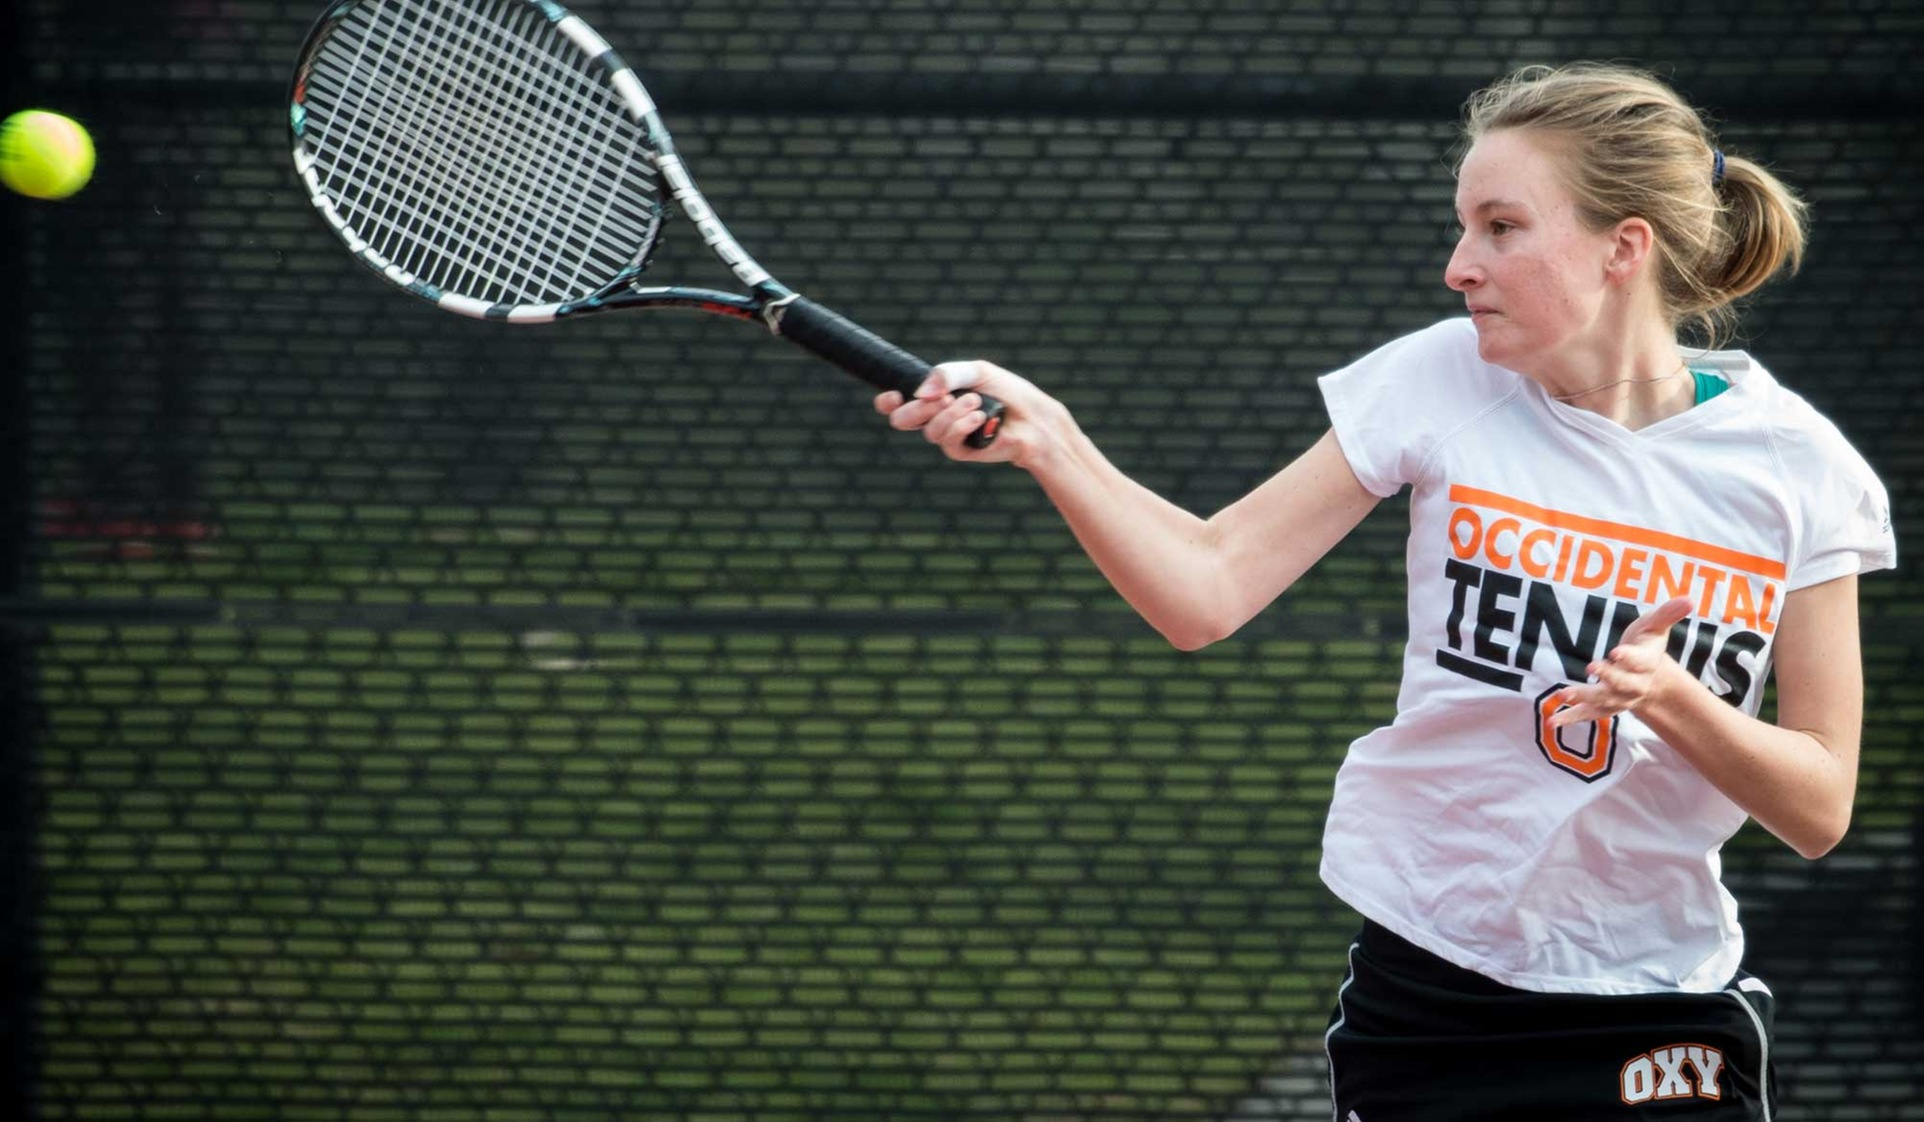 Farrell Wins Again at No. 1 Singles